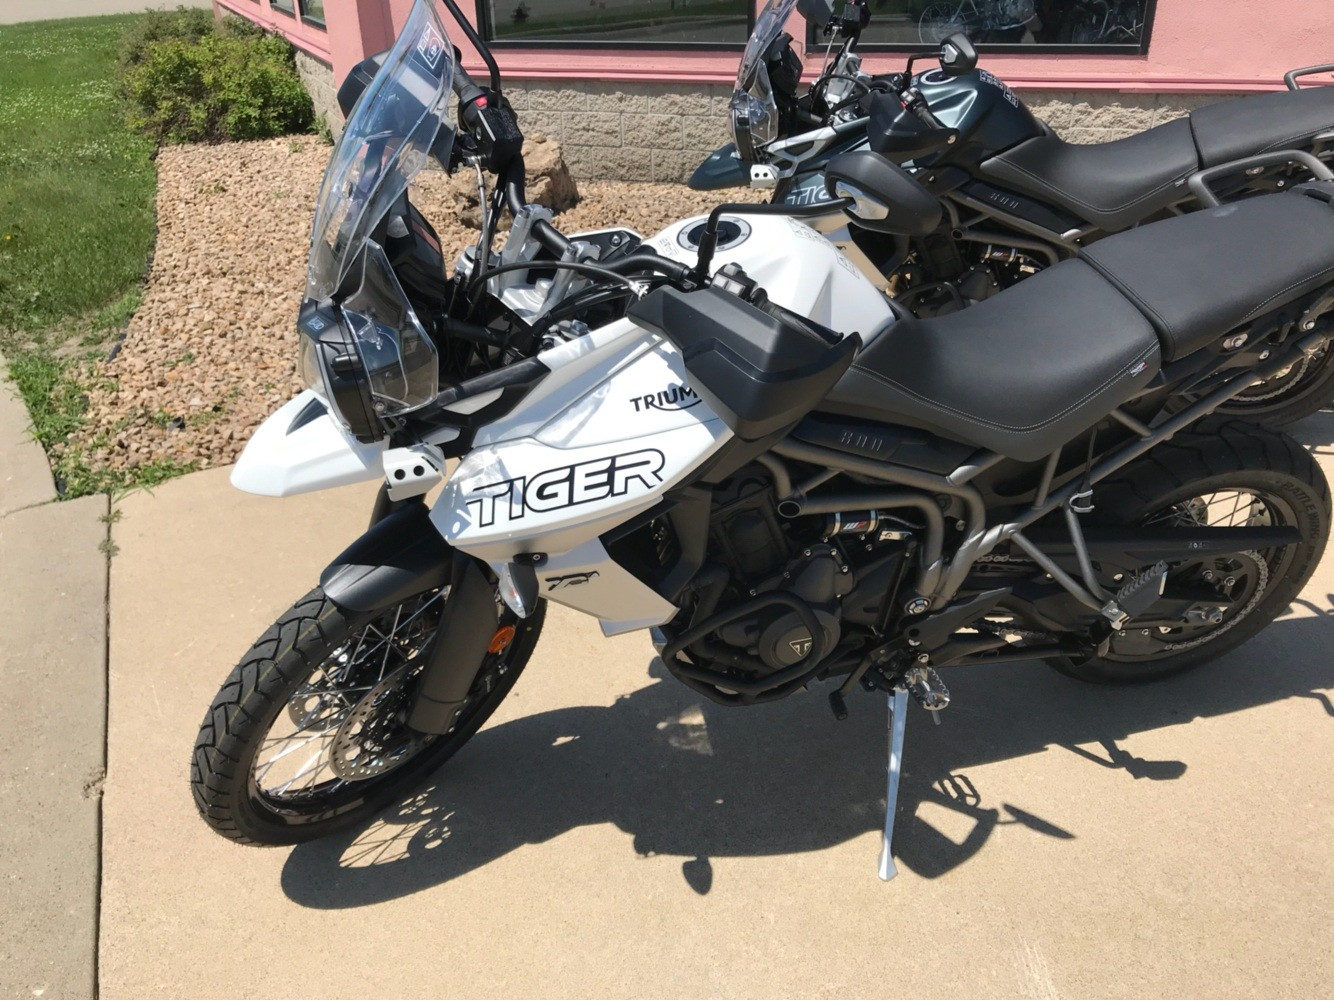 2018 Triumph Tiger 800 XCa in Belle Plaine, Minnesota